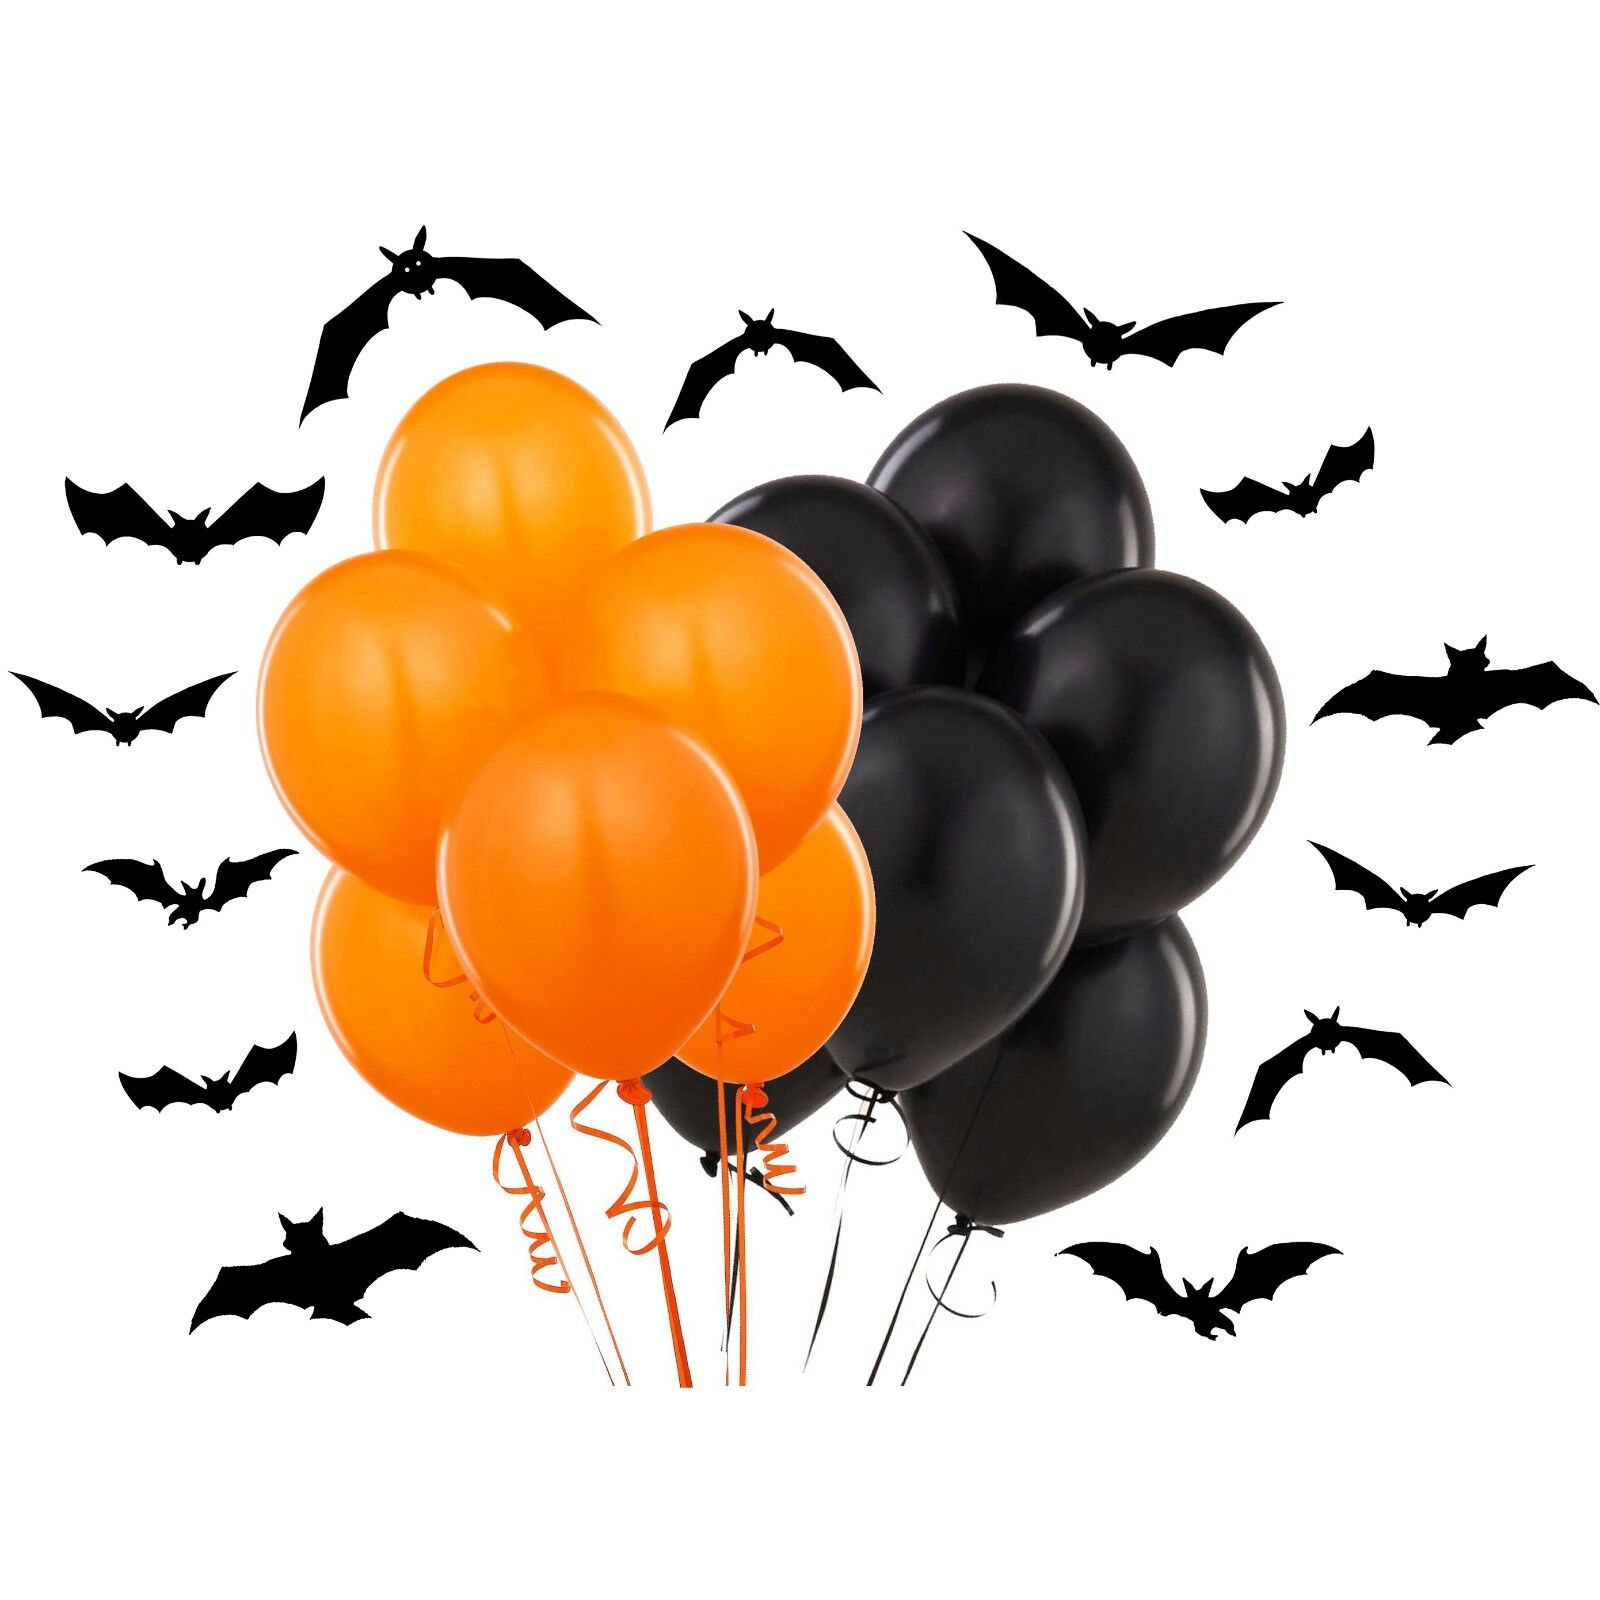 hight resolution of details about plain black orange 12 inch halloween party balloons decorations